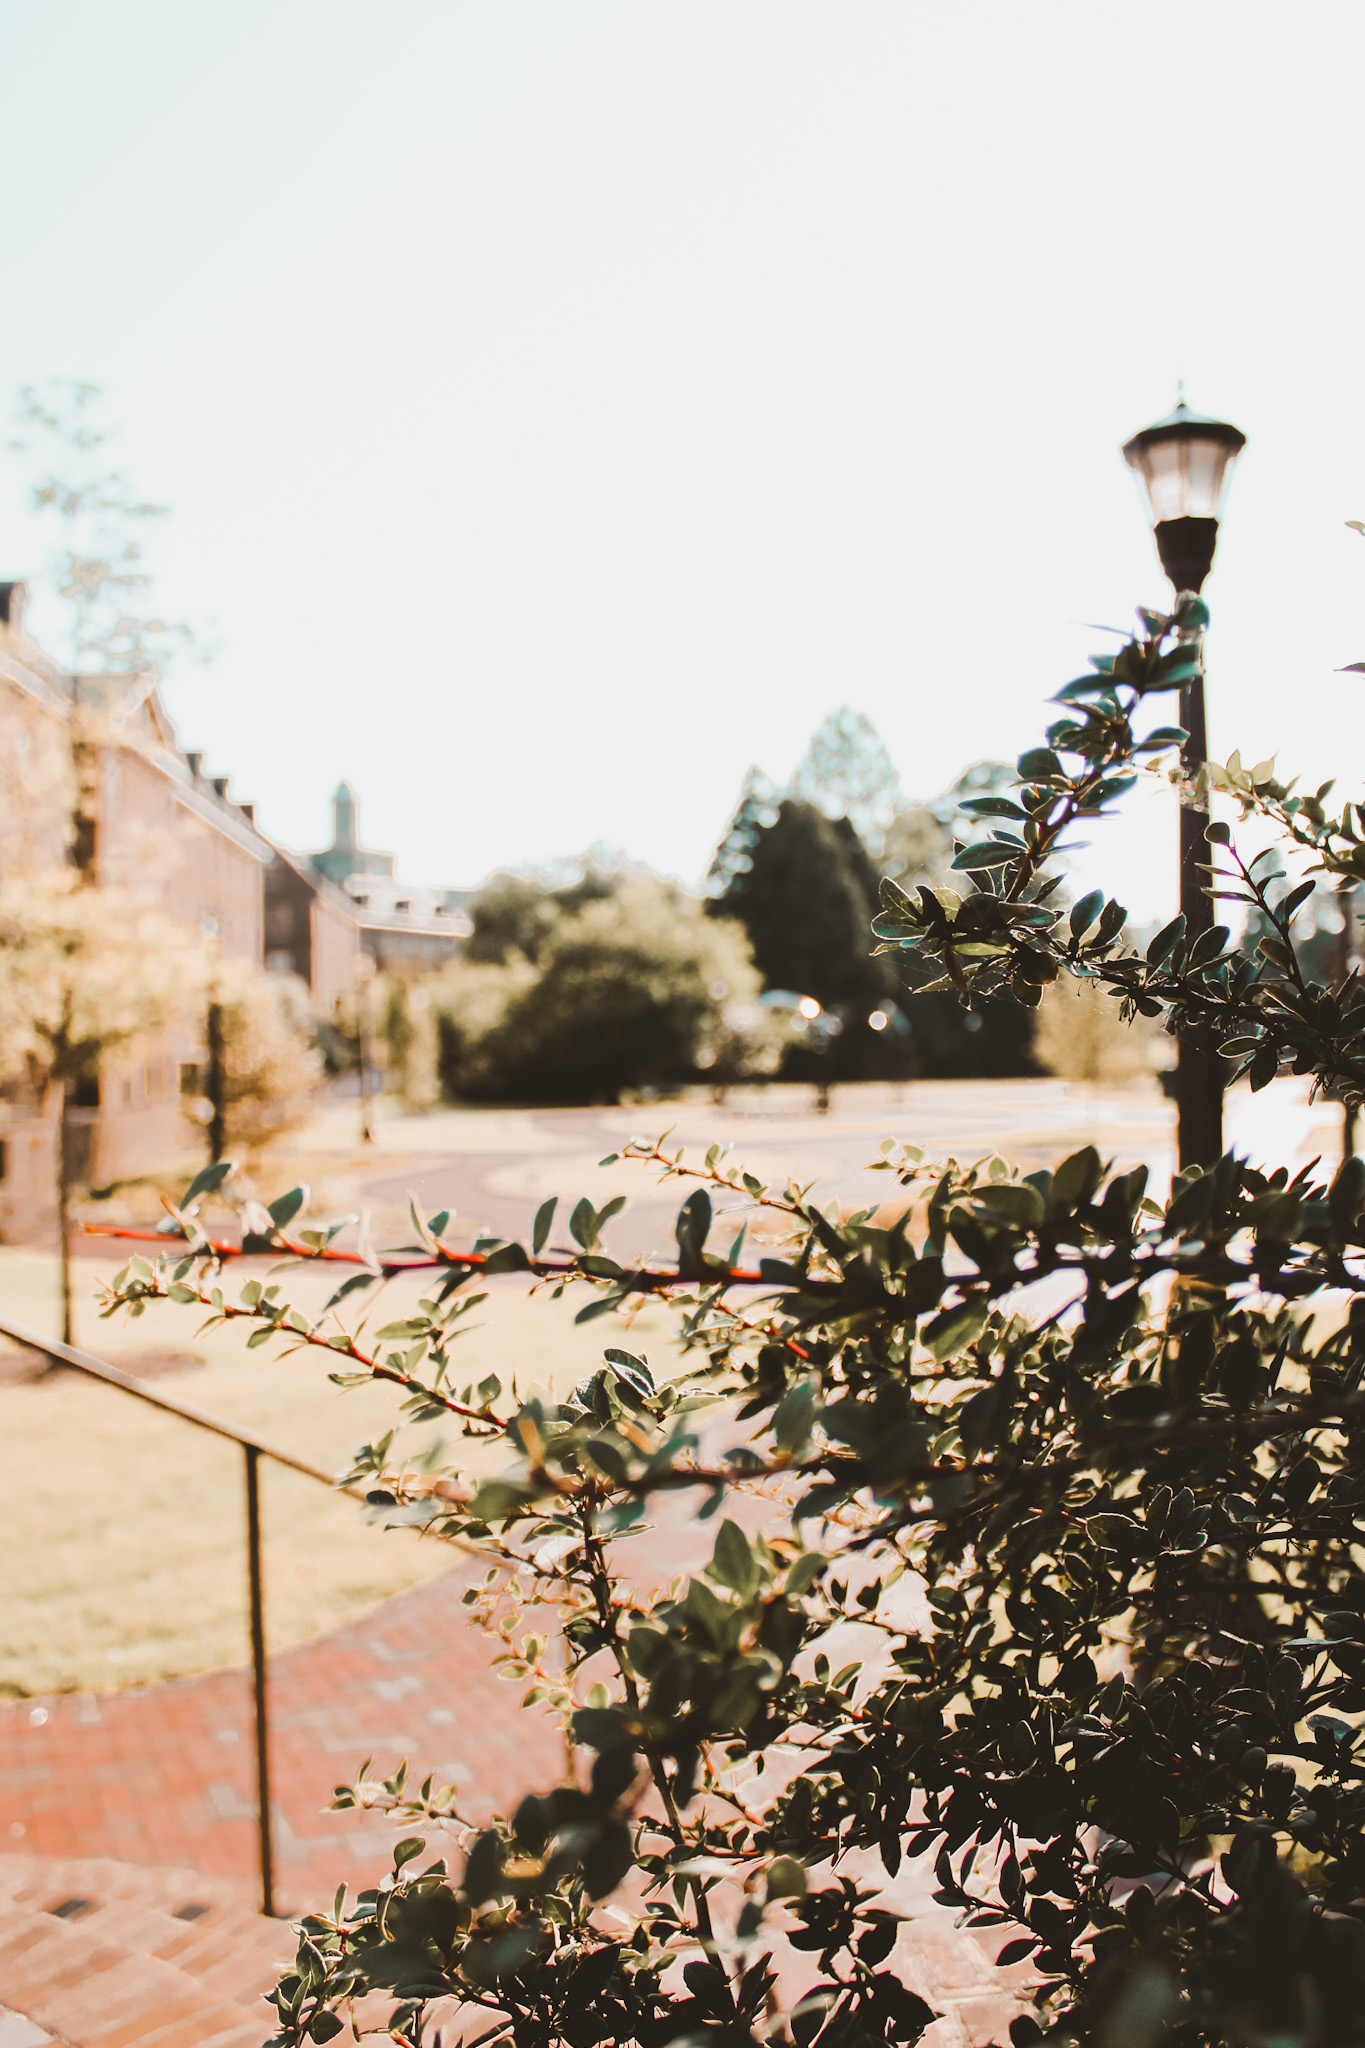 Walking around William & Mary is one of the top things to do in Williamsburg, VA